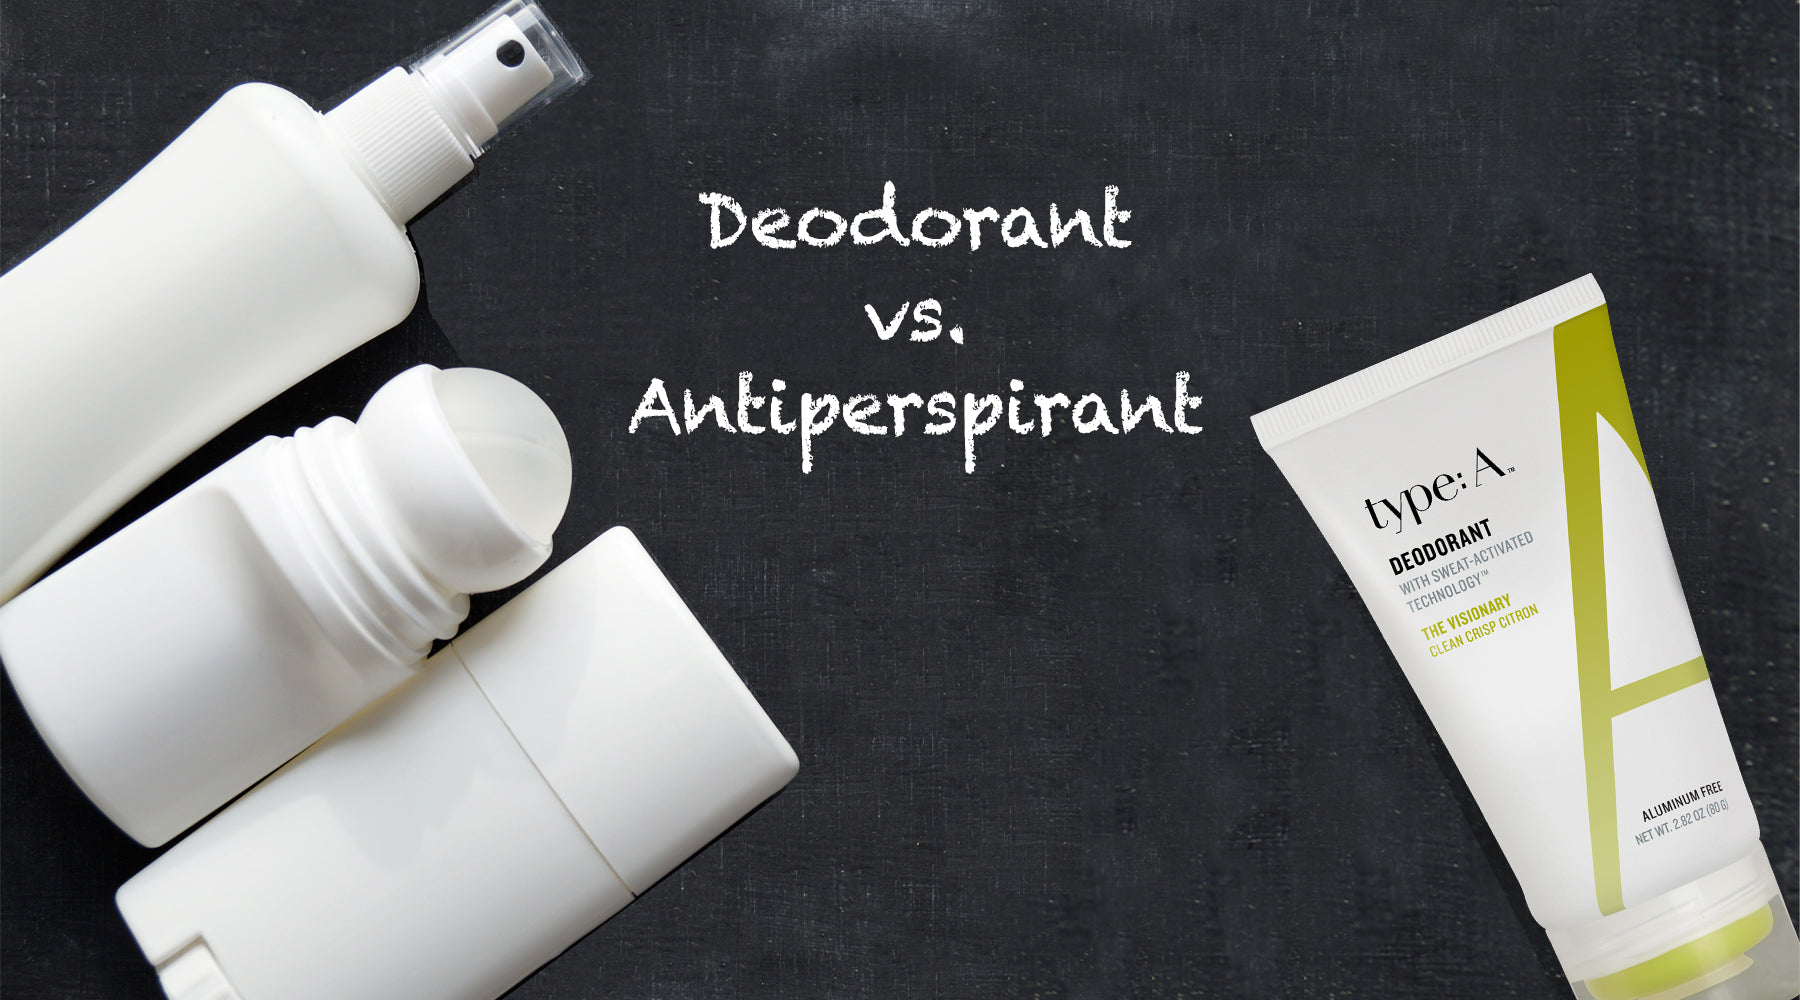 deodorant vs. antiperspirant difference between deodorant and antiperspirant